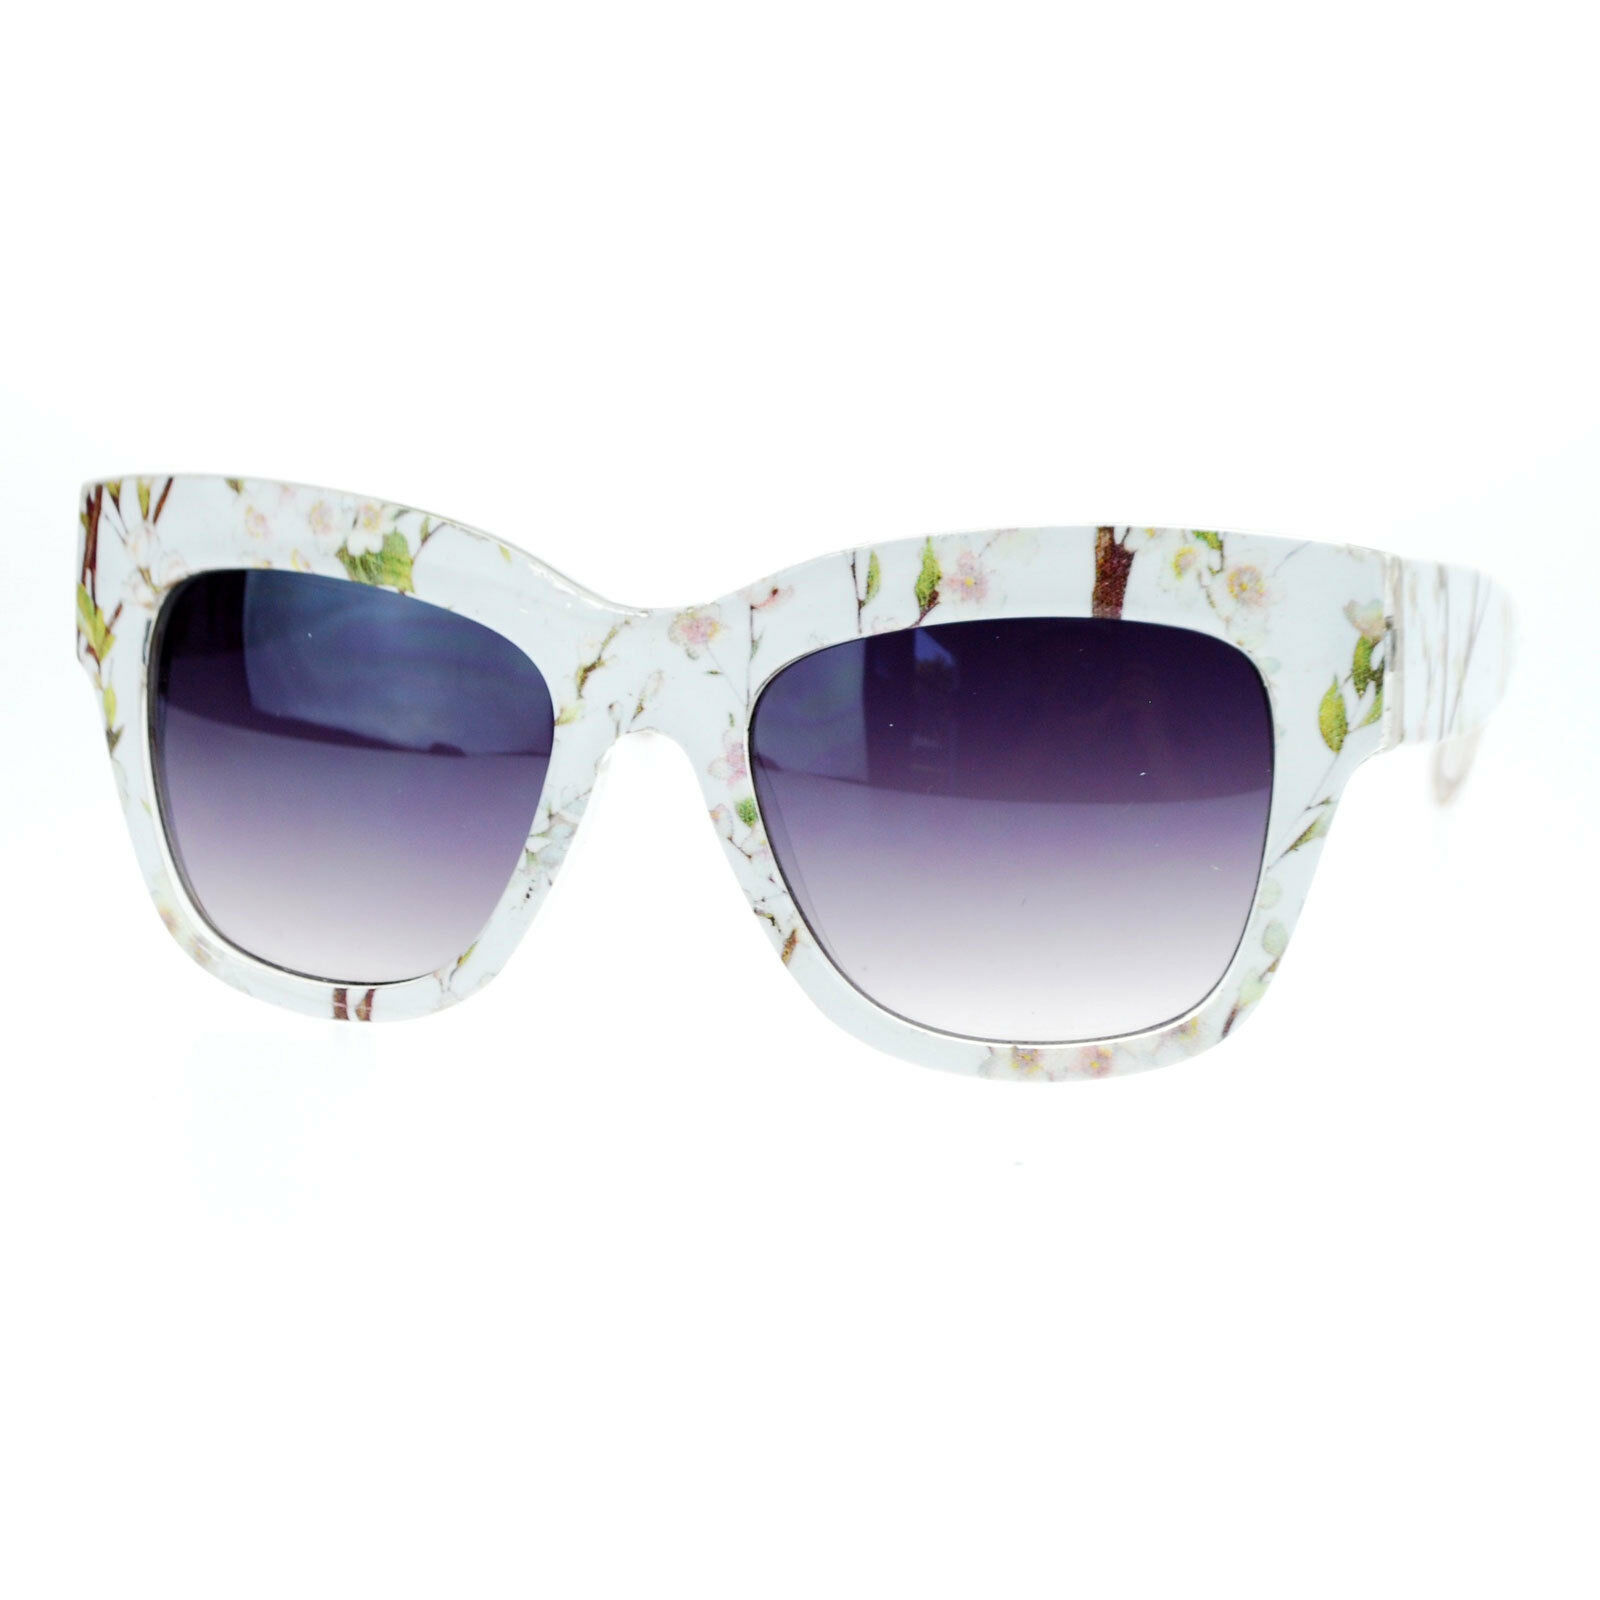 Womens Fashion Sunglasses Classic Thick Oversized Square Frame